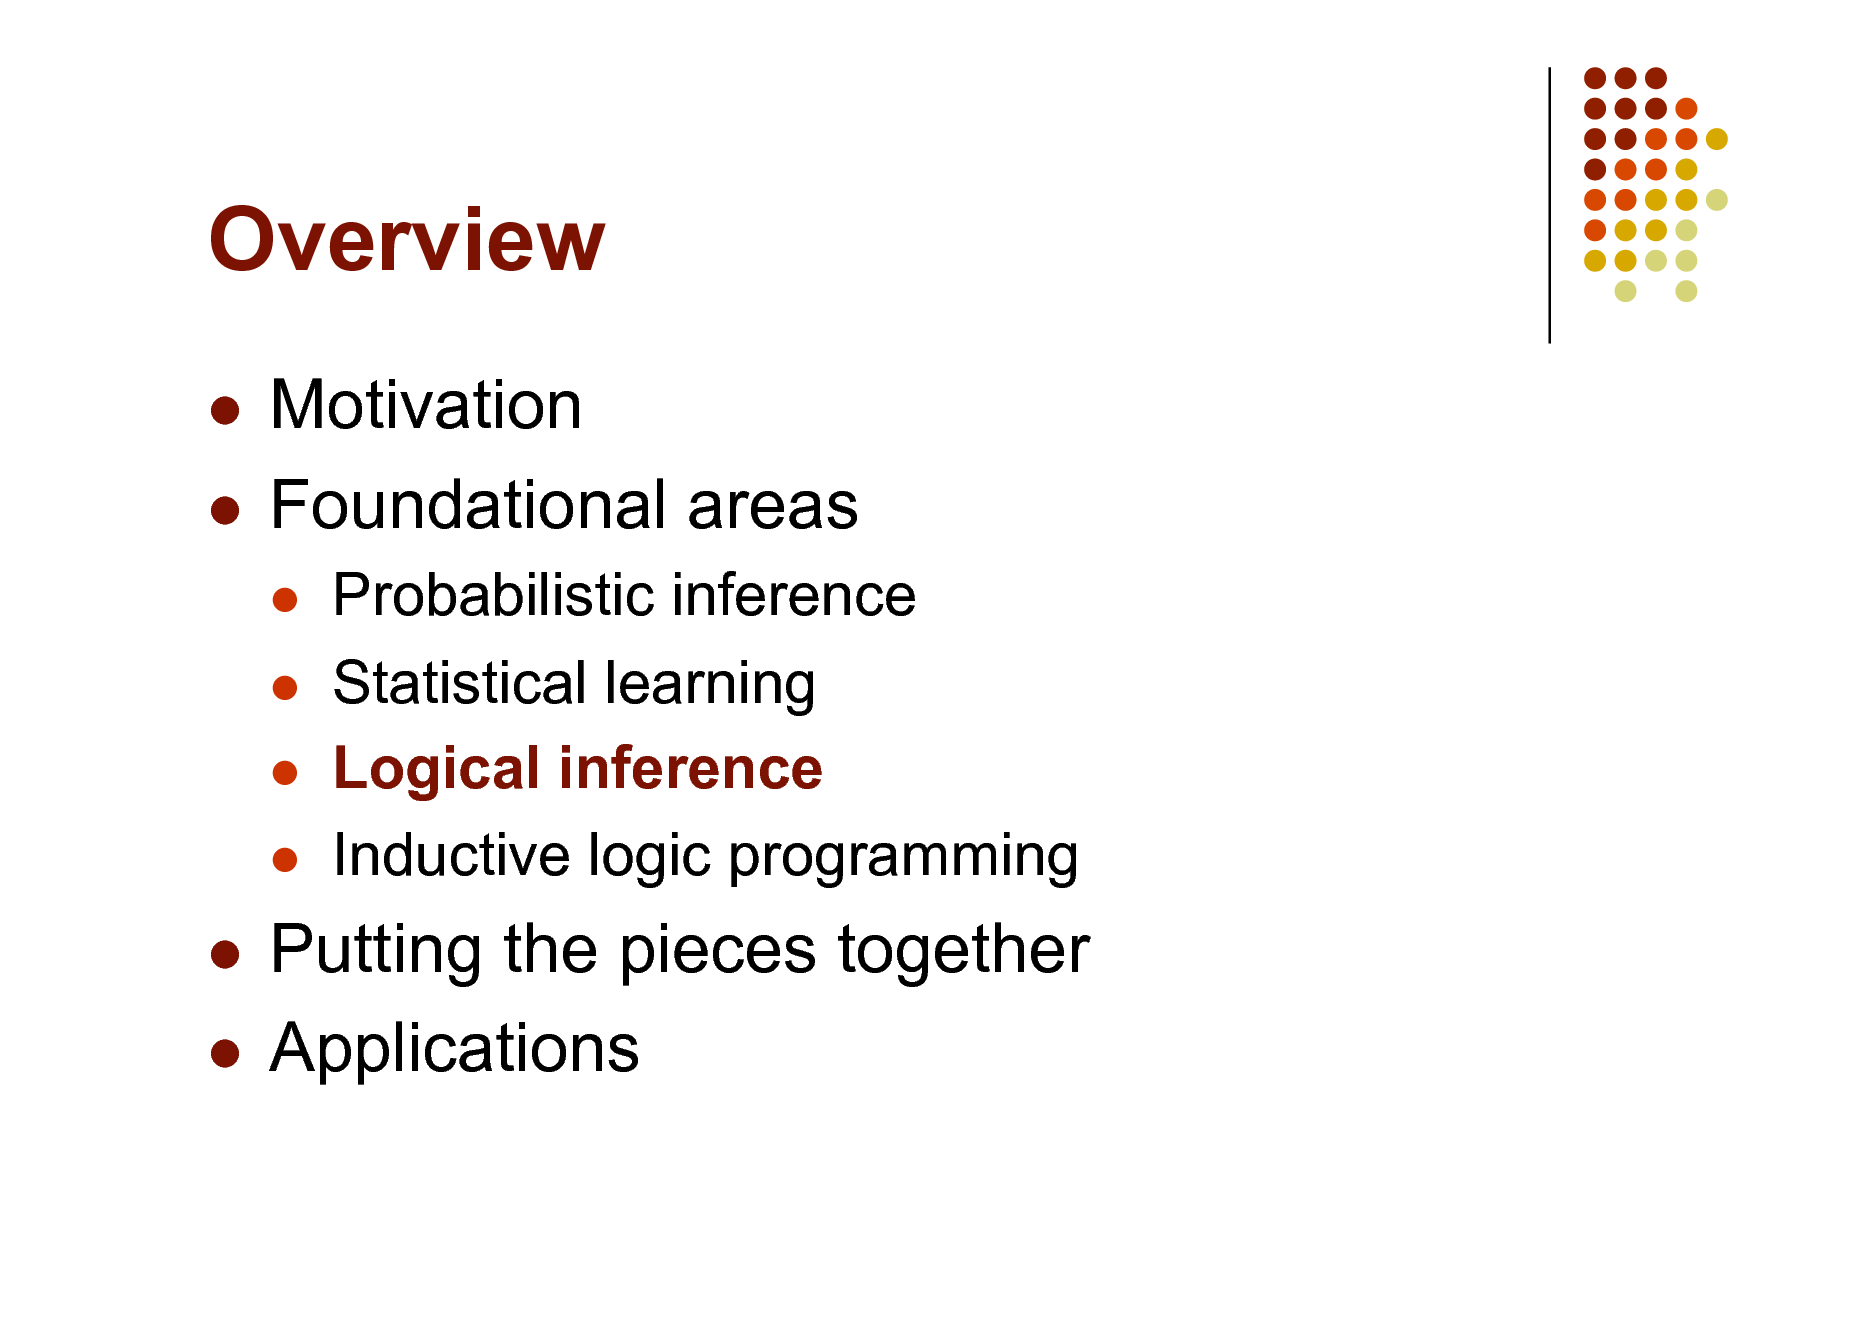 Slide: Overview Motivation  Foundational areas       Probabilistic inference Statistical learning Logical inference Inductive logic programming  Putting the pieces together  Applications